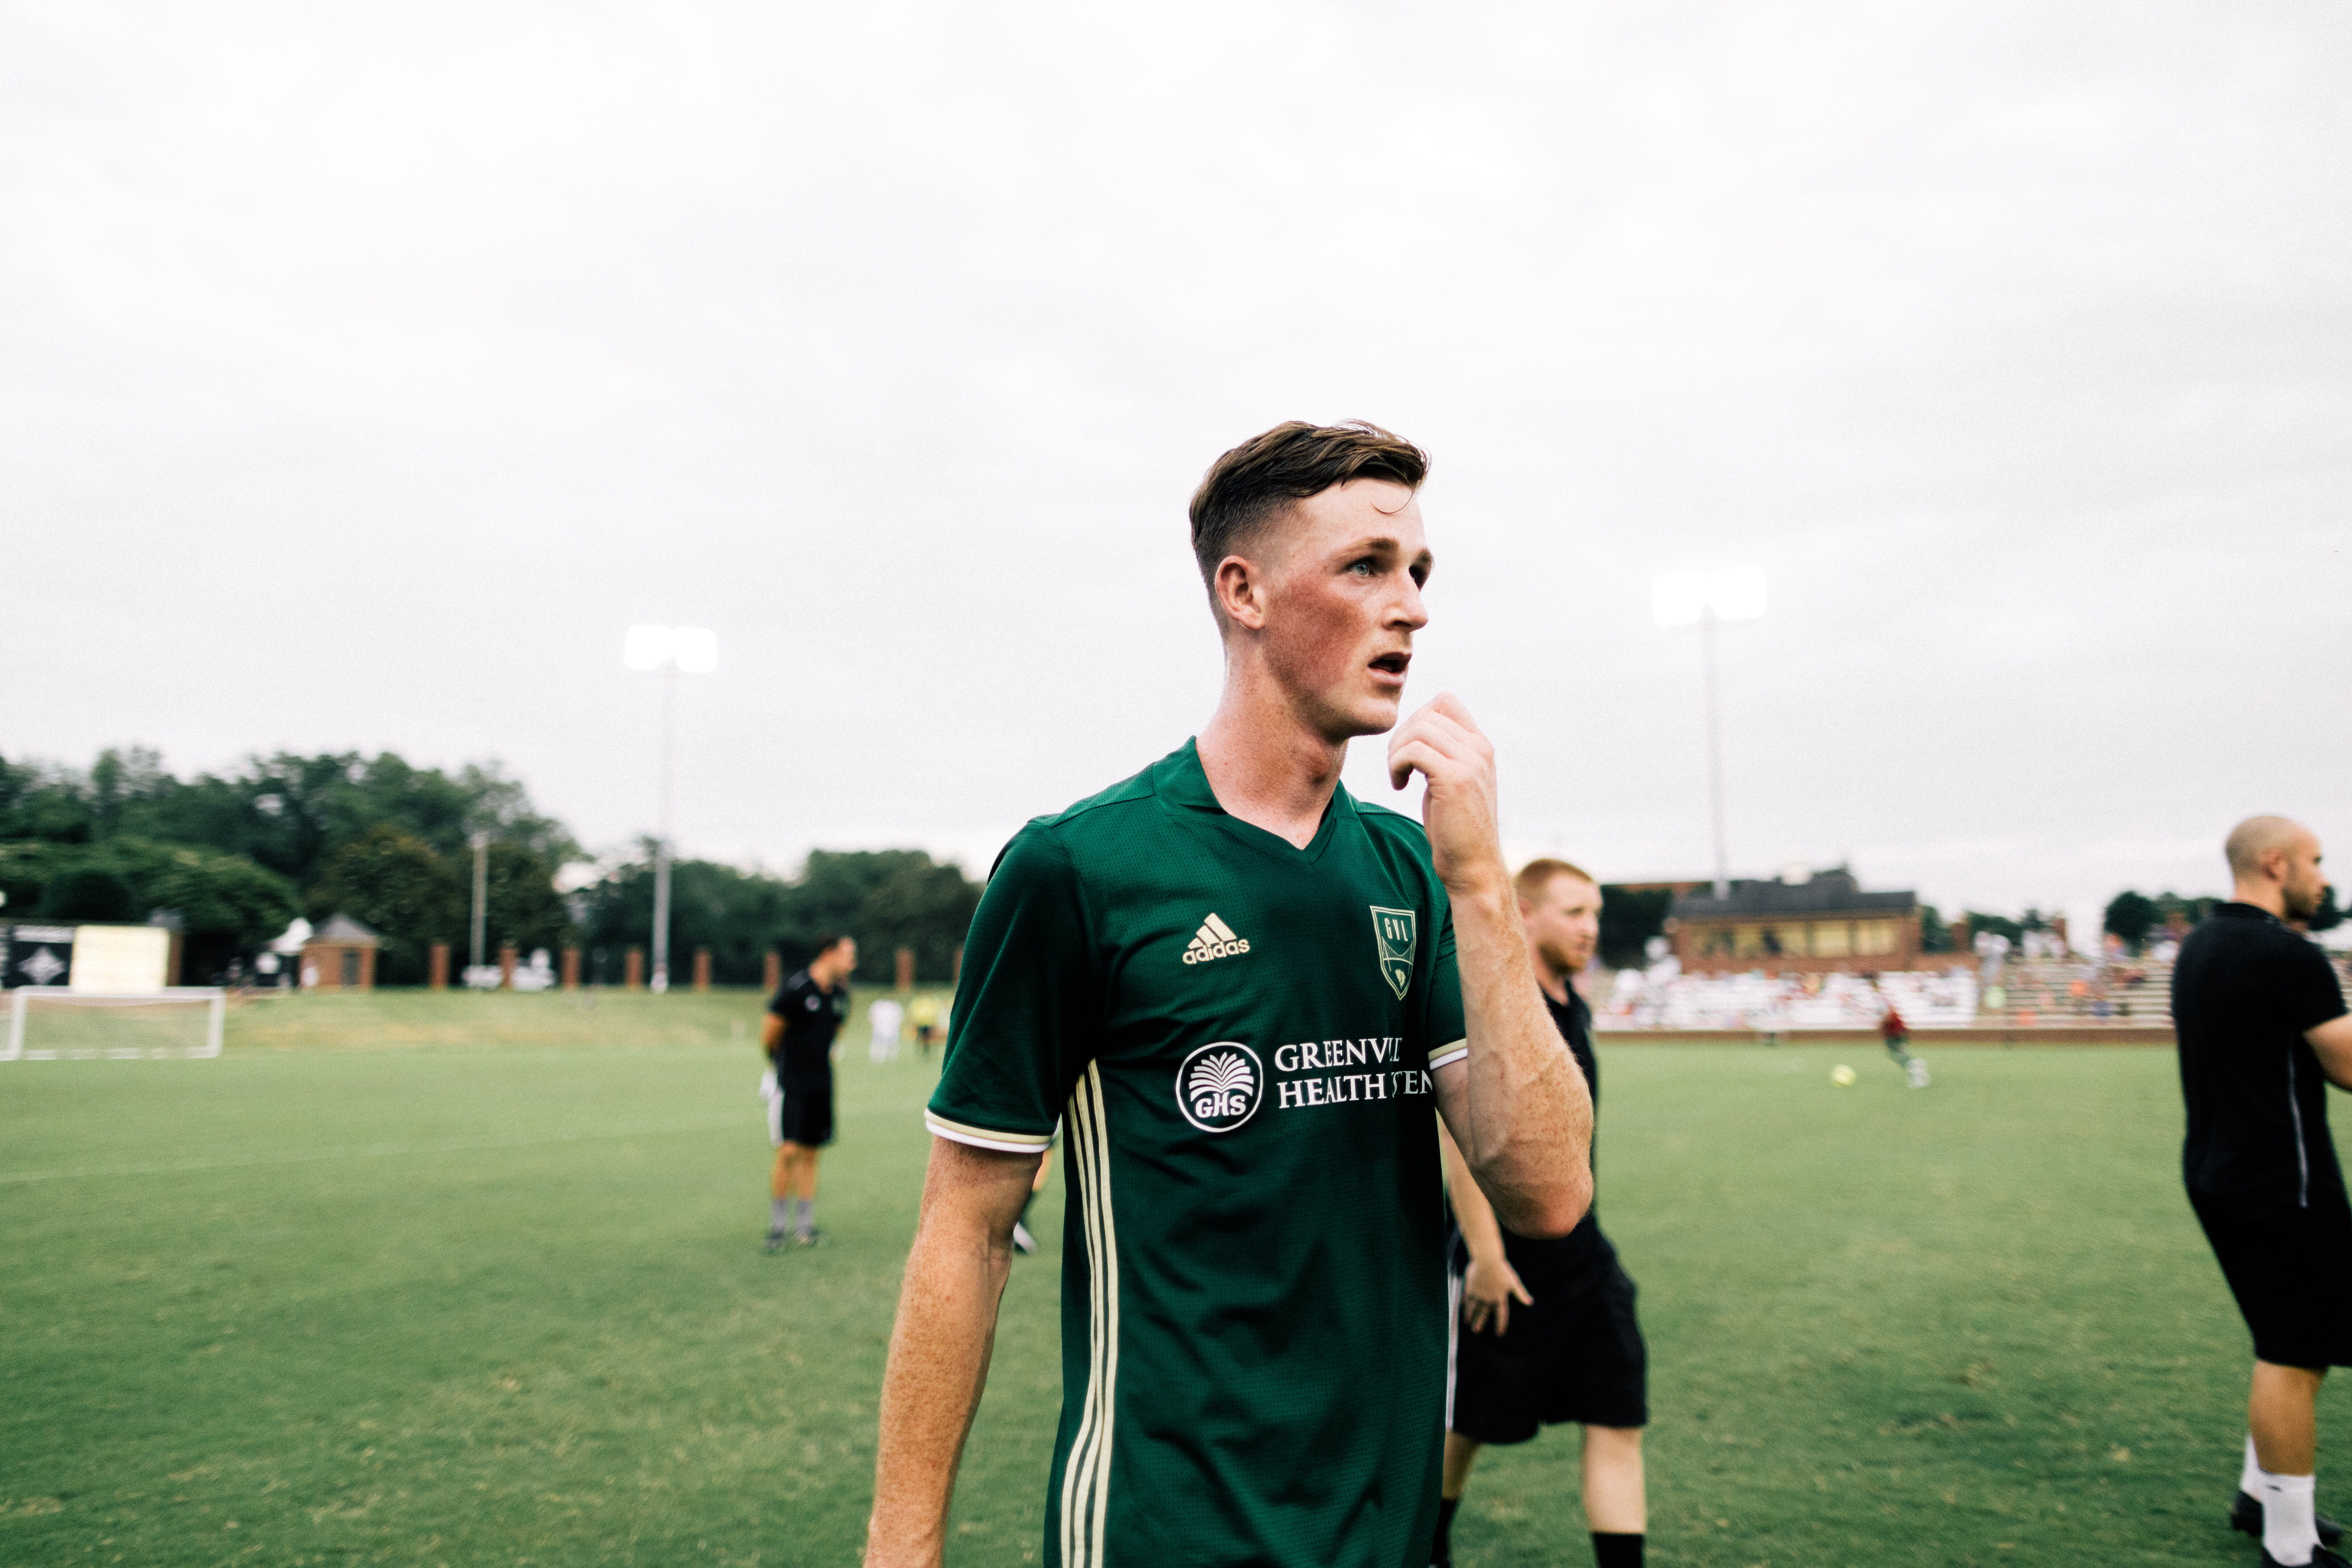 BOYS IN GREEN: JACK HOEY